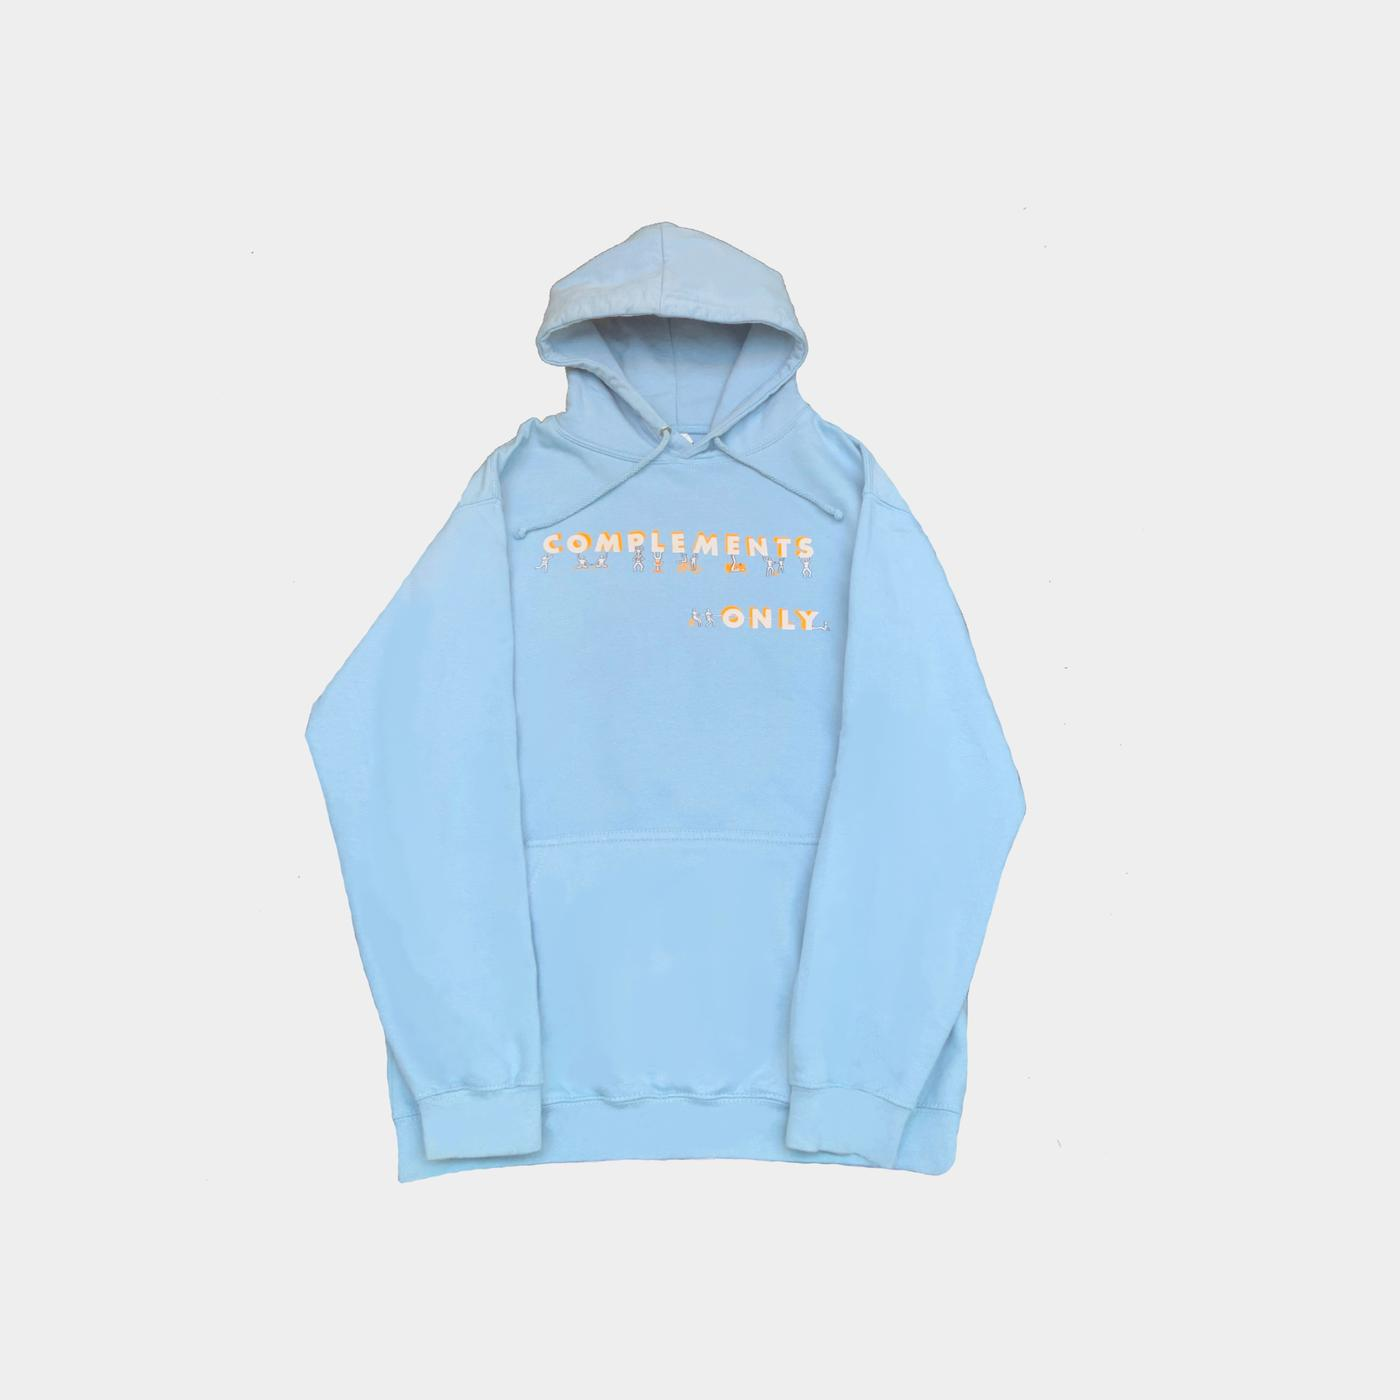 complements only hoodie (blue)